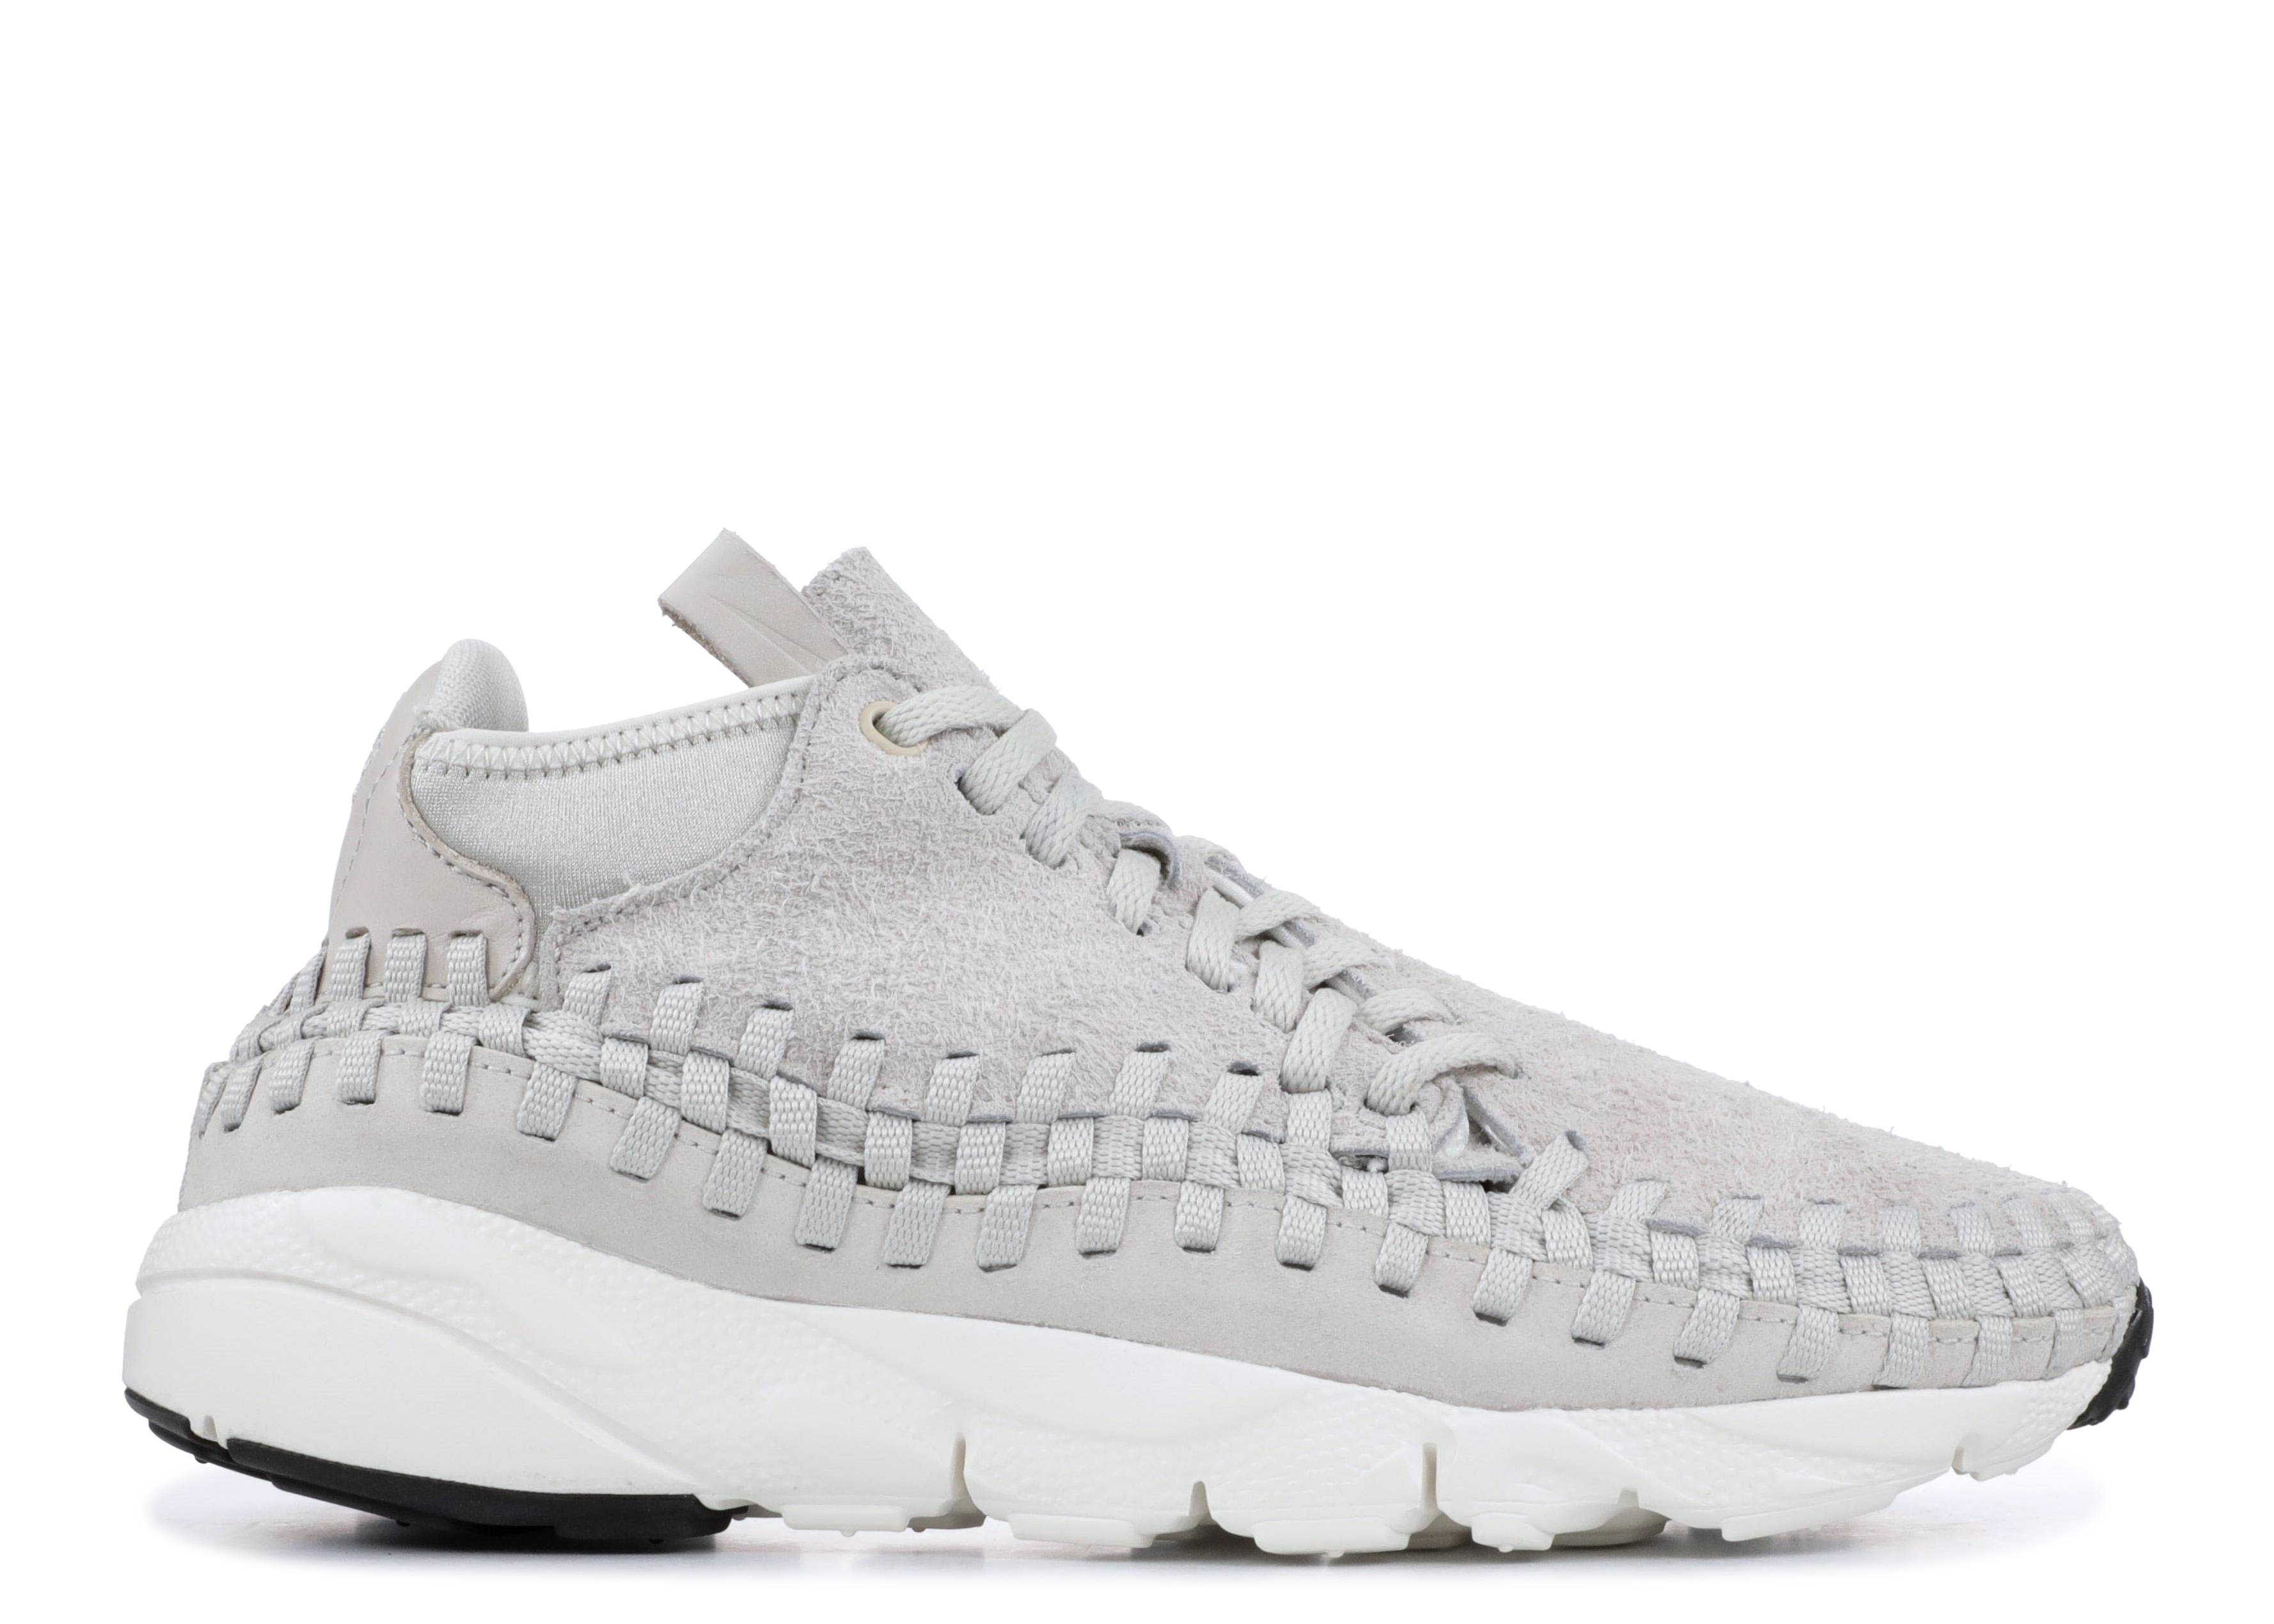 """Air Footscape Woven Chukka QS 'Hairy Suede' """"Hairy Suede"""""""